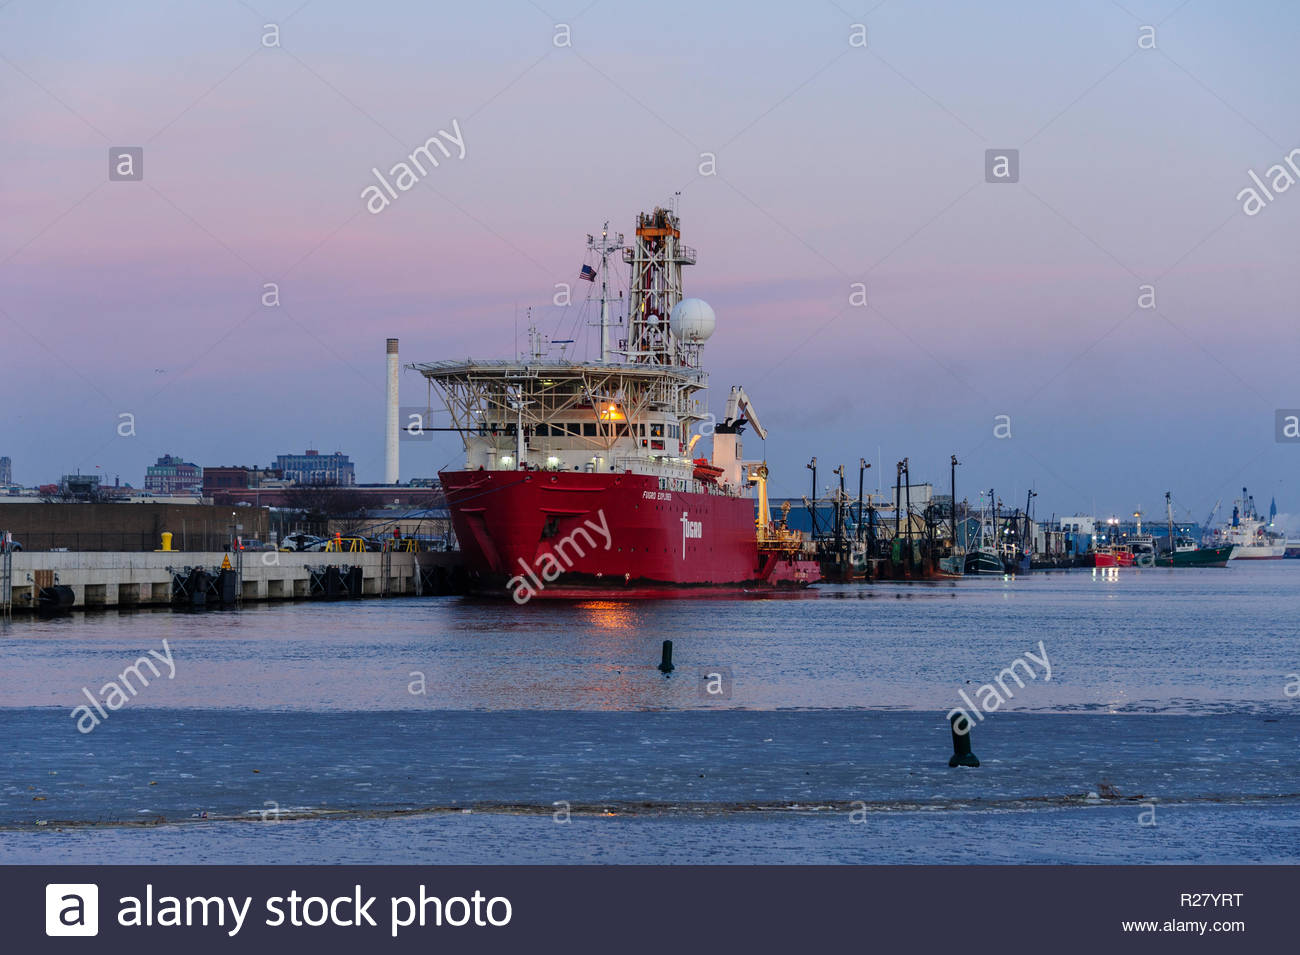 New Bedford, Massachusetts, USA - January 19, 2018: Geotechnical drill ship Fugro Explorer in pre-dawn on icy New Bedford harbor - Stock Image